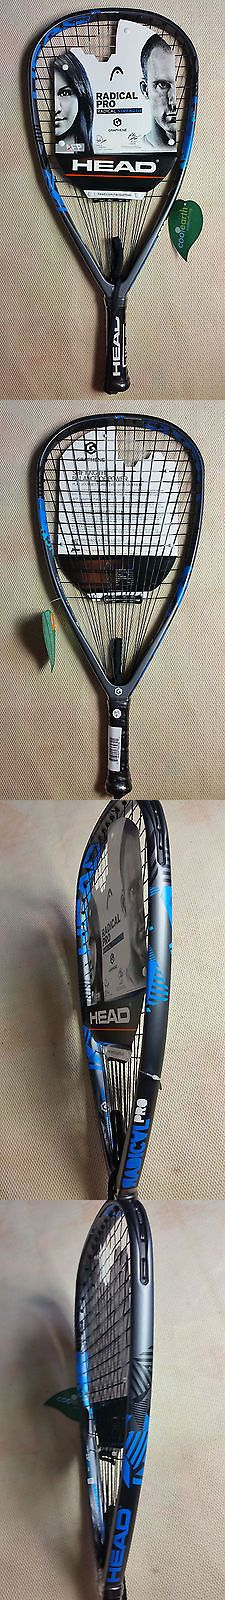 Racquetball 62168: New!!! Head Graphene Radical Pro Racquetball Racquet. 3 5 8 Grip. Warranty. -> BUY IT NOW ONLY: $169 on eBay!